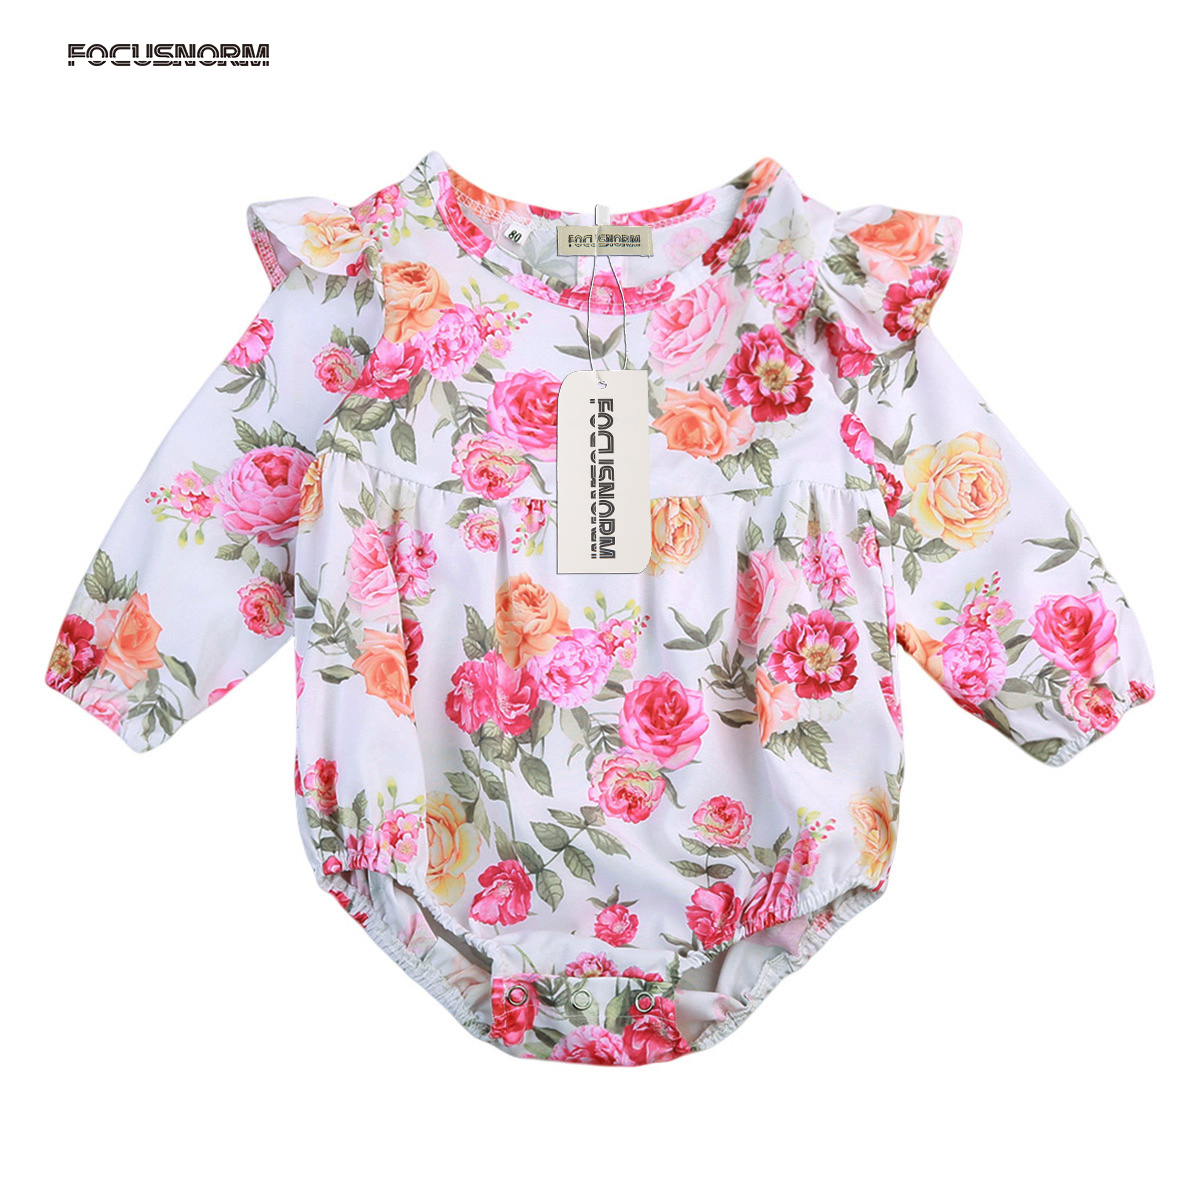 Butterfly Sleeve Romper Floral Outfits Jumpsuit Infant Toddler Baby Girl Kids Playsuit Clothes